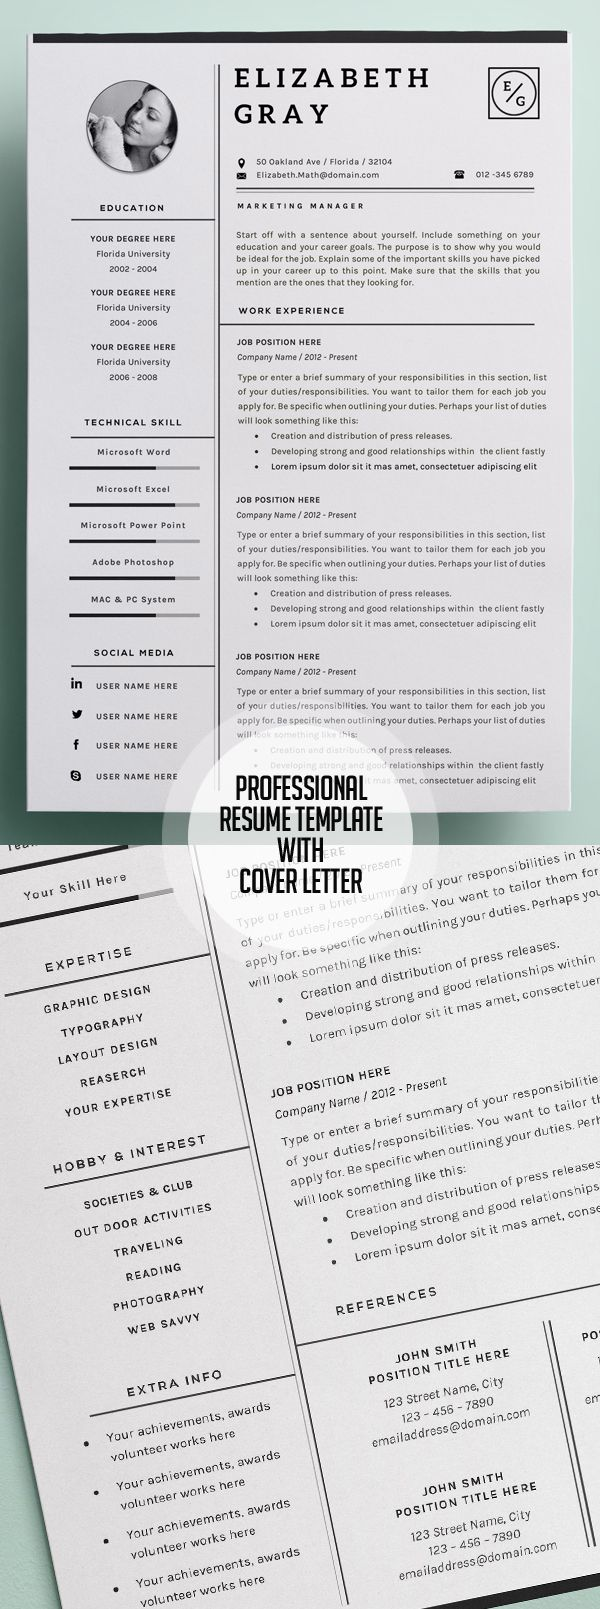 Opposenewapstandardsus  Fascinating  Resume Ideas On Pinterest  Resume Resume Templates And  With Magnificent Professional And Modern Resume Template With Page Cover Cvtemplate With Cool Good Skills To List On Resume Also Example Of A Job Resume In Addition Resume Template Free Word And Sample Marketing Resume As Well As Cover Letter Examples Resume Additionally Key Words For Resumes From Pinterestcom With Opposenewapstandardsus  Magnificent  Resume Ideas On Pinterest  Resume Resume Templates And  With Cool Professional And Modern Resume Template With Page Cover Cvtemplate And Fascinating Good Skills To List On Resume Also Example Of A Job Resume In Addition Resume Template Free Word From Pinterestcom